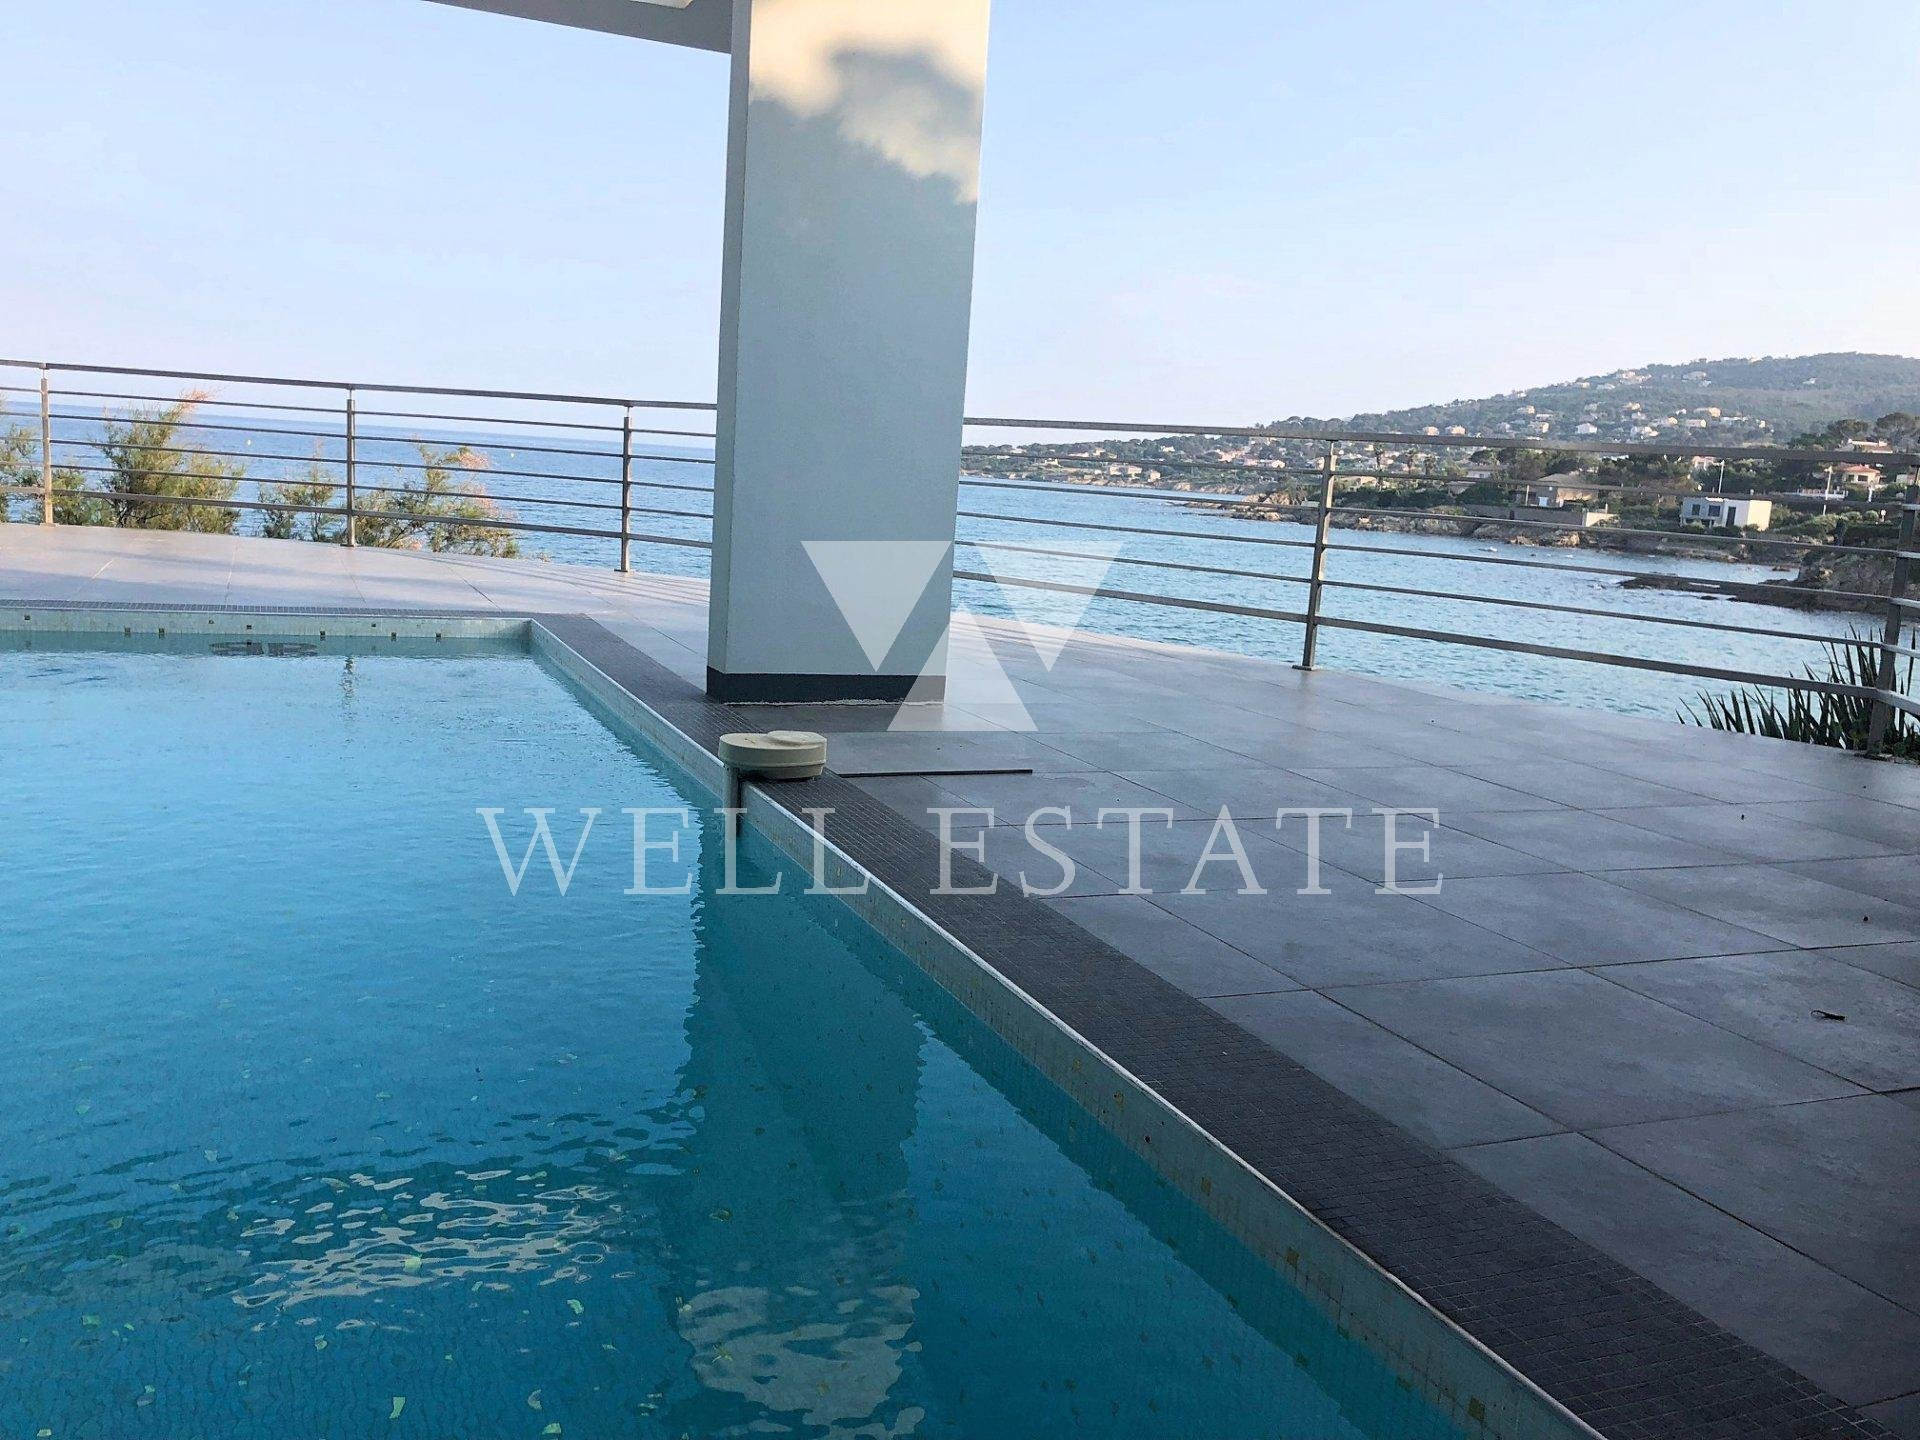 SAINT-AYGULF BEACH FRONT MODERN VILLA 200M2 SWIMMING POOL ELEVATOR